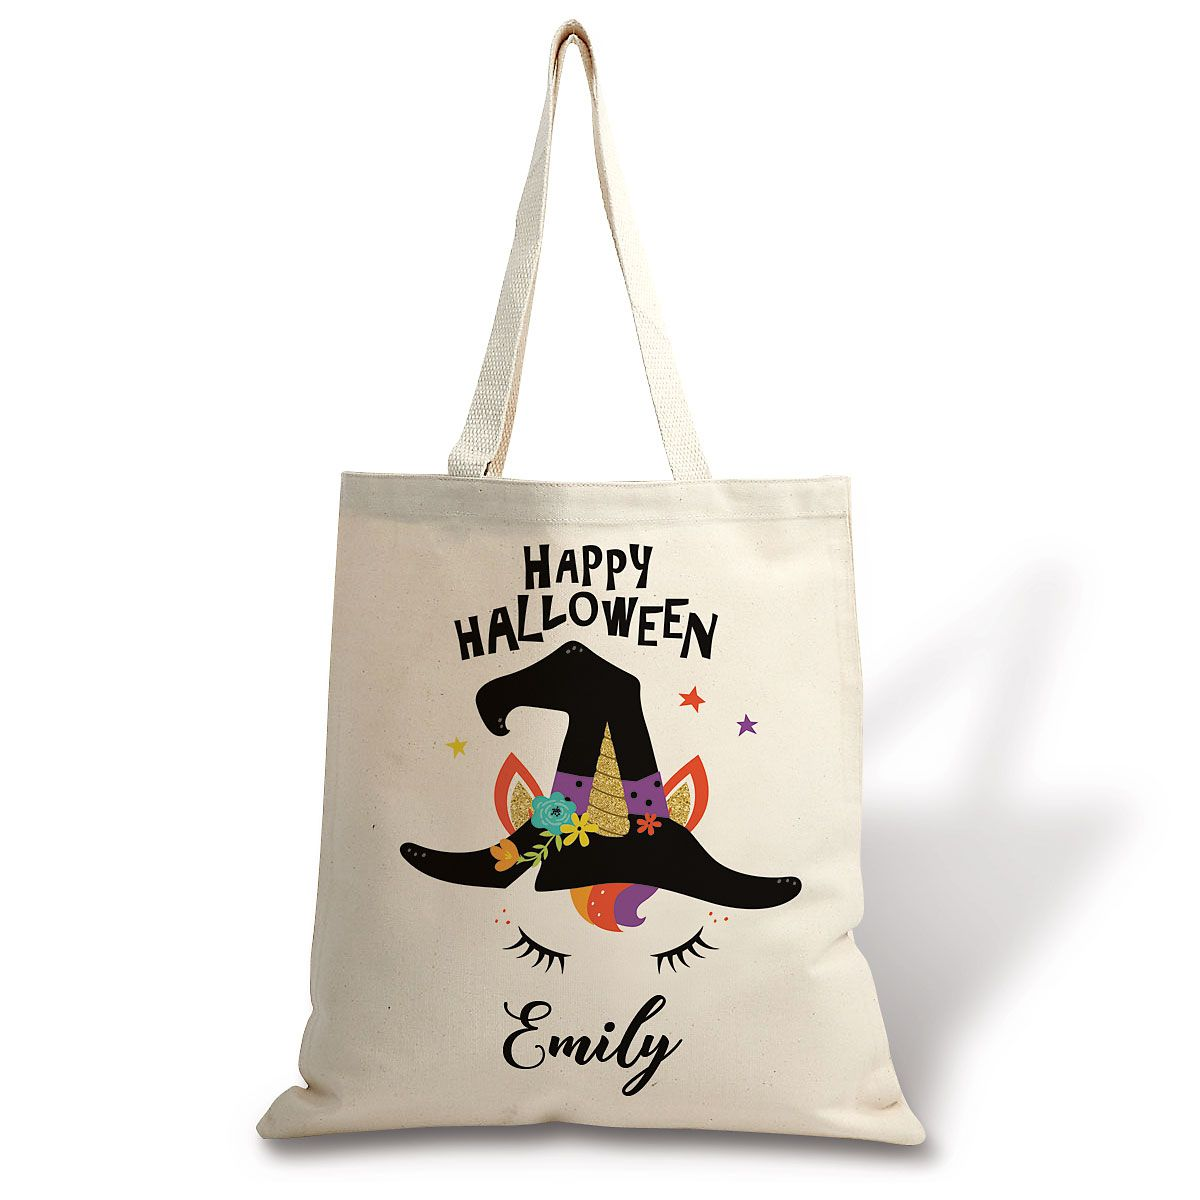 Personalized Kids' Halloween Unicorn Tote